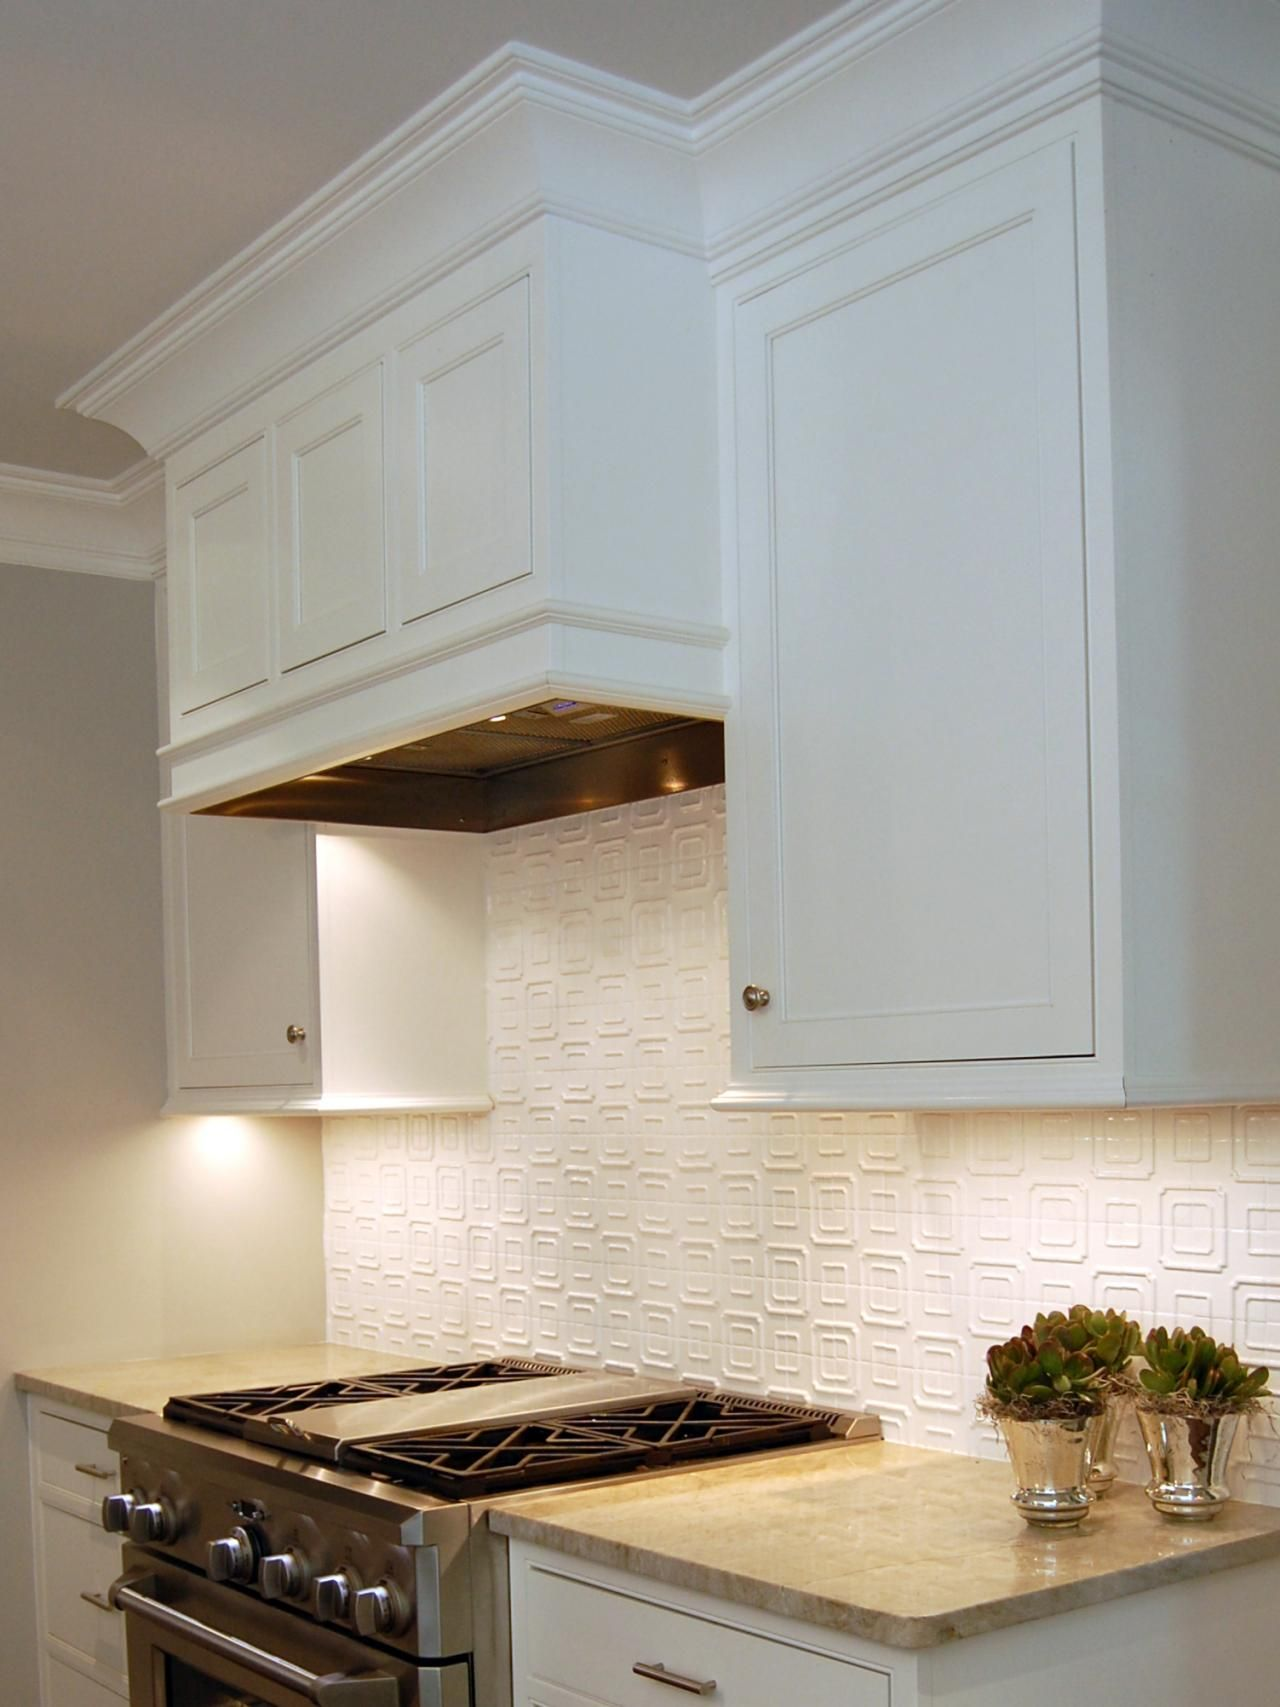 The hidden range hood helps the open kitchen blend easily with the ...